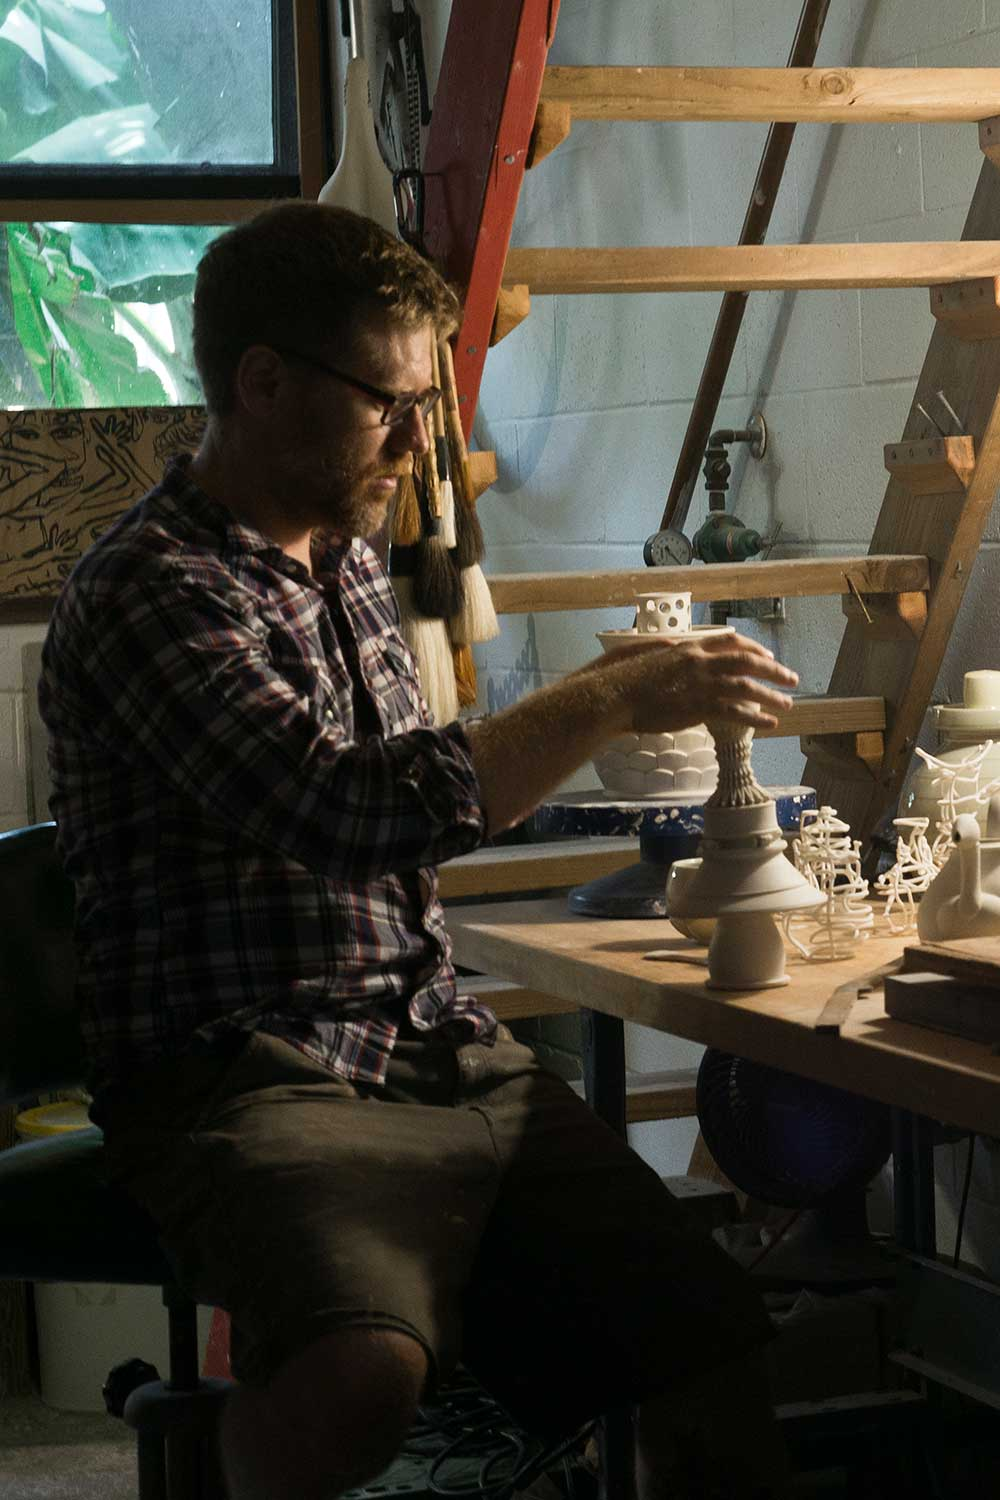 Shawn Spangler in studio working with clay